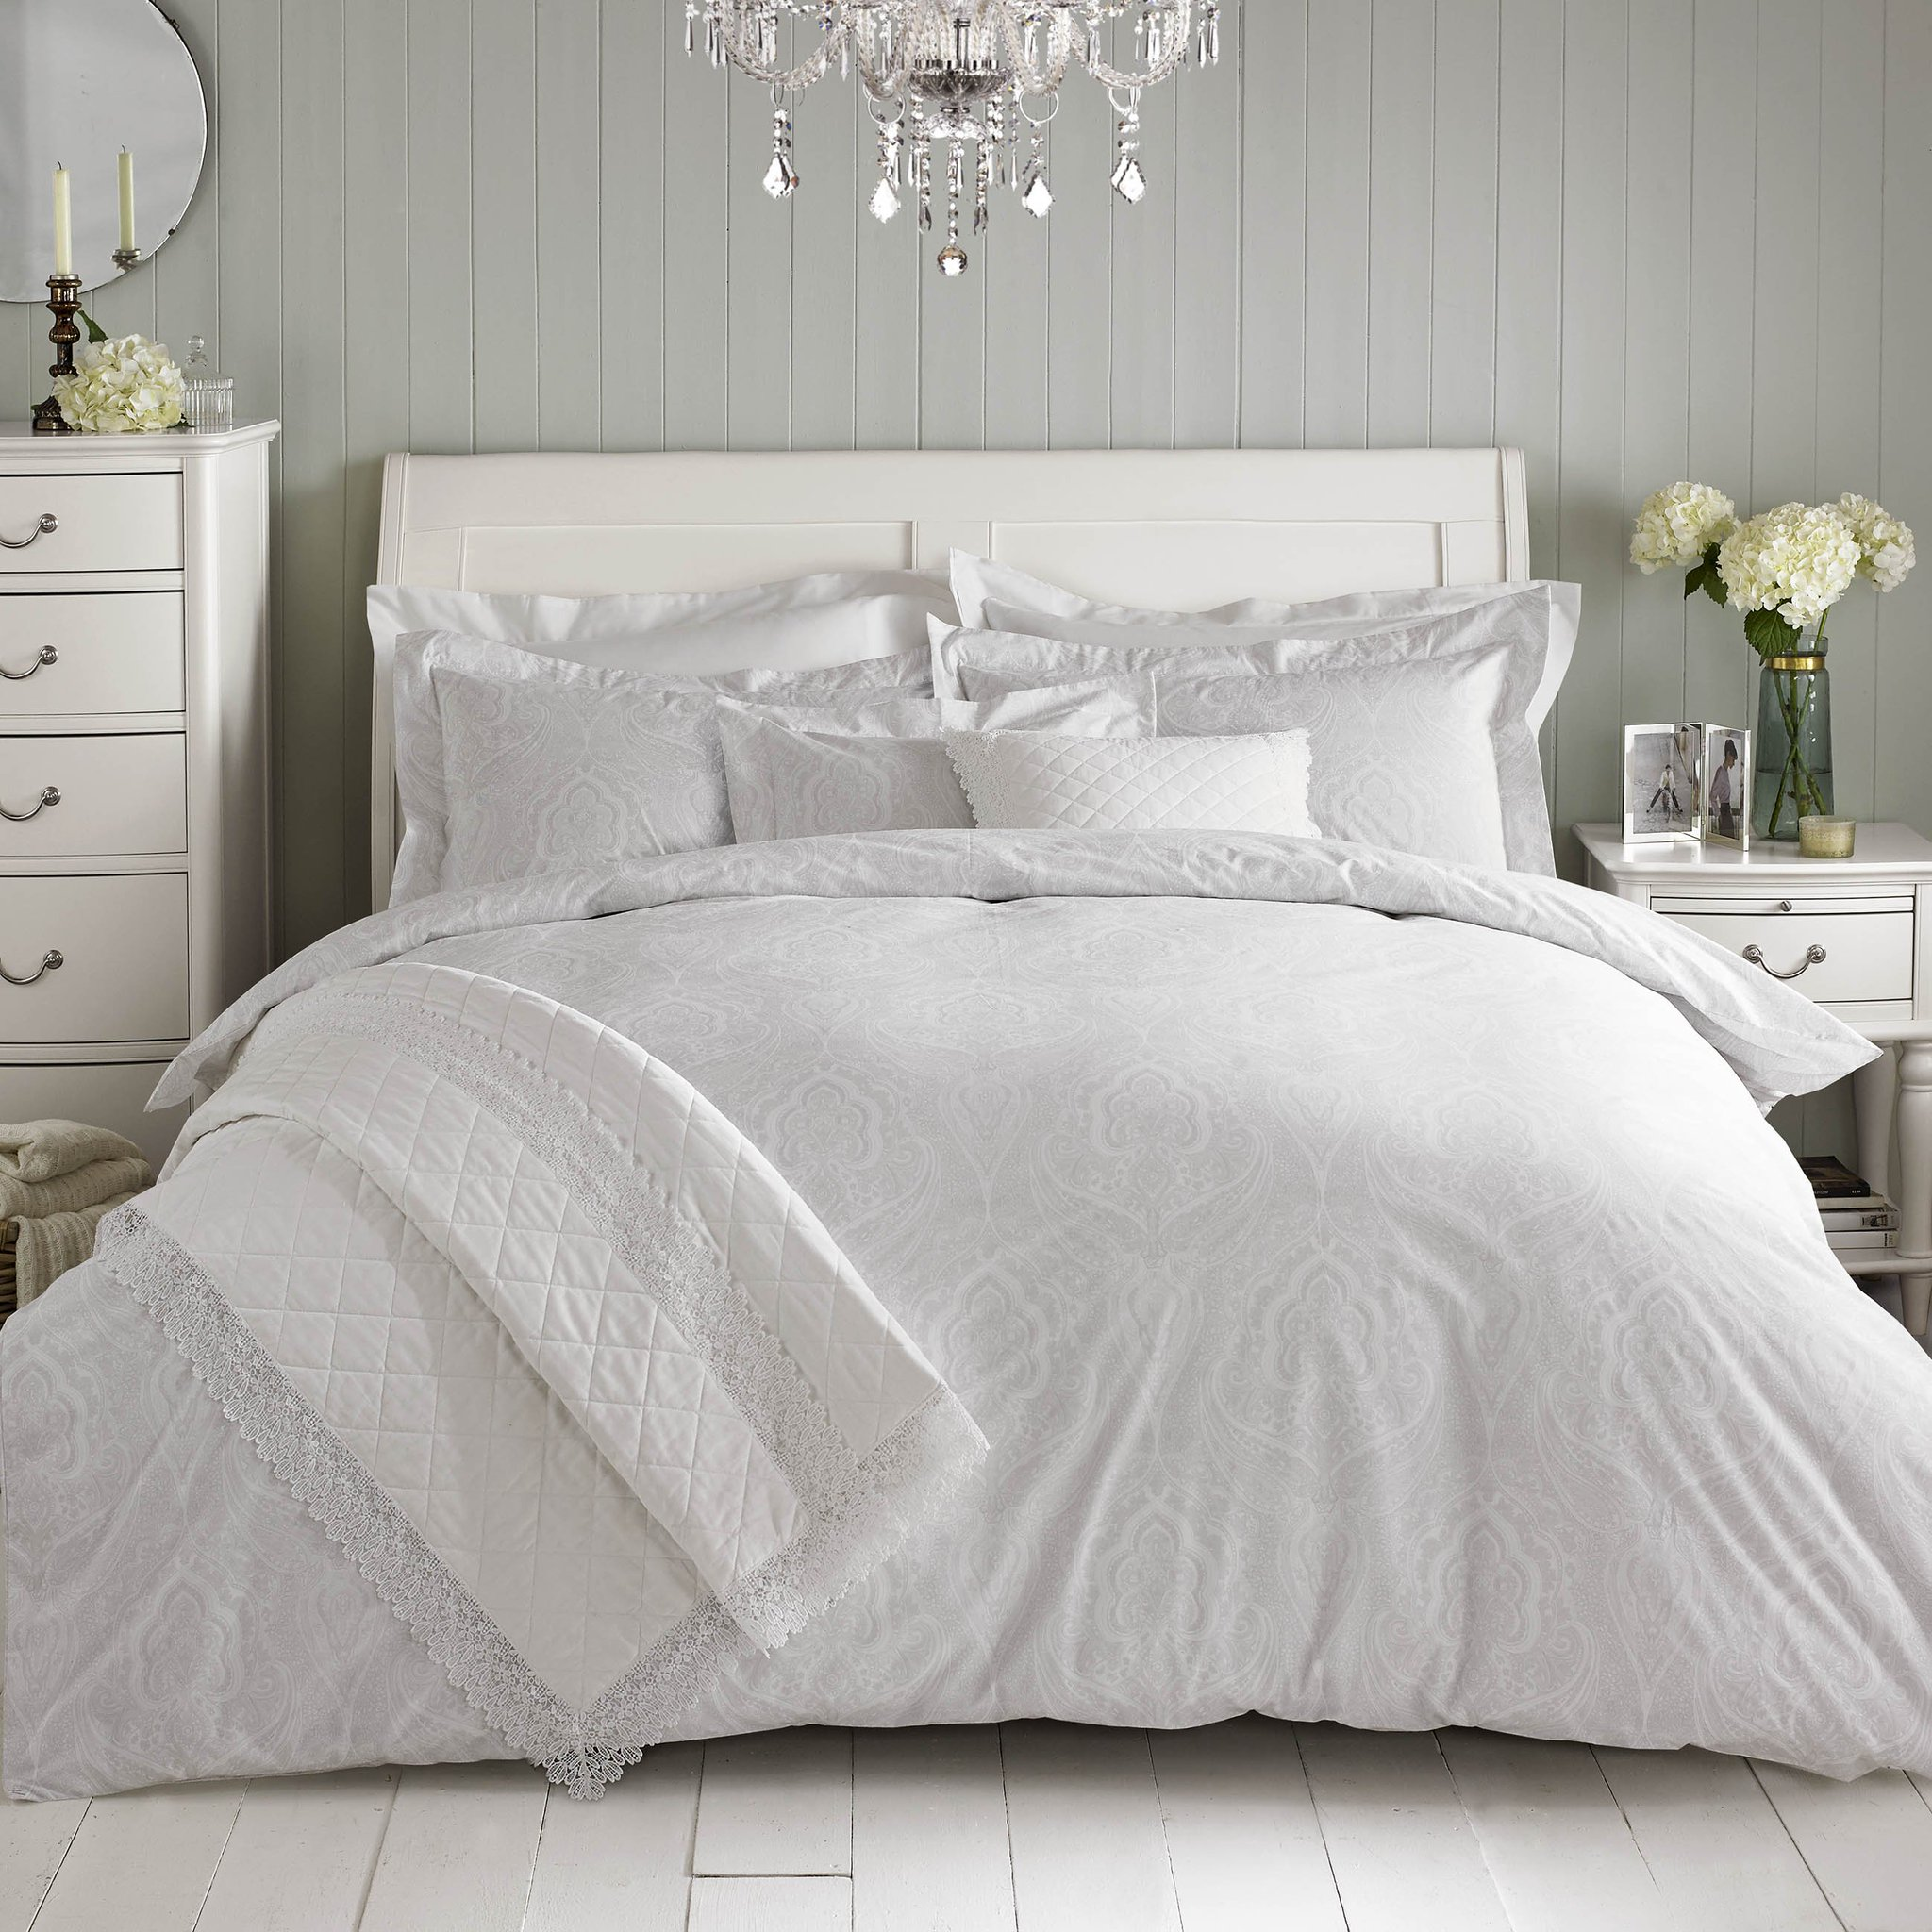 Excited to say you can also now find my bedding range in its lovely new home @DunelmUK! 💚xx https://t.co/5MbzWeS2J9 https://t.co/bRCxKIhWjo